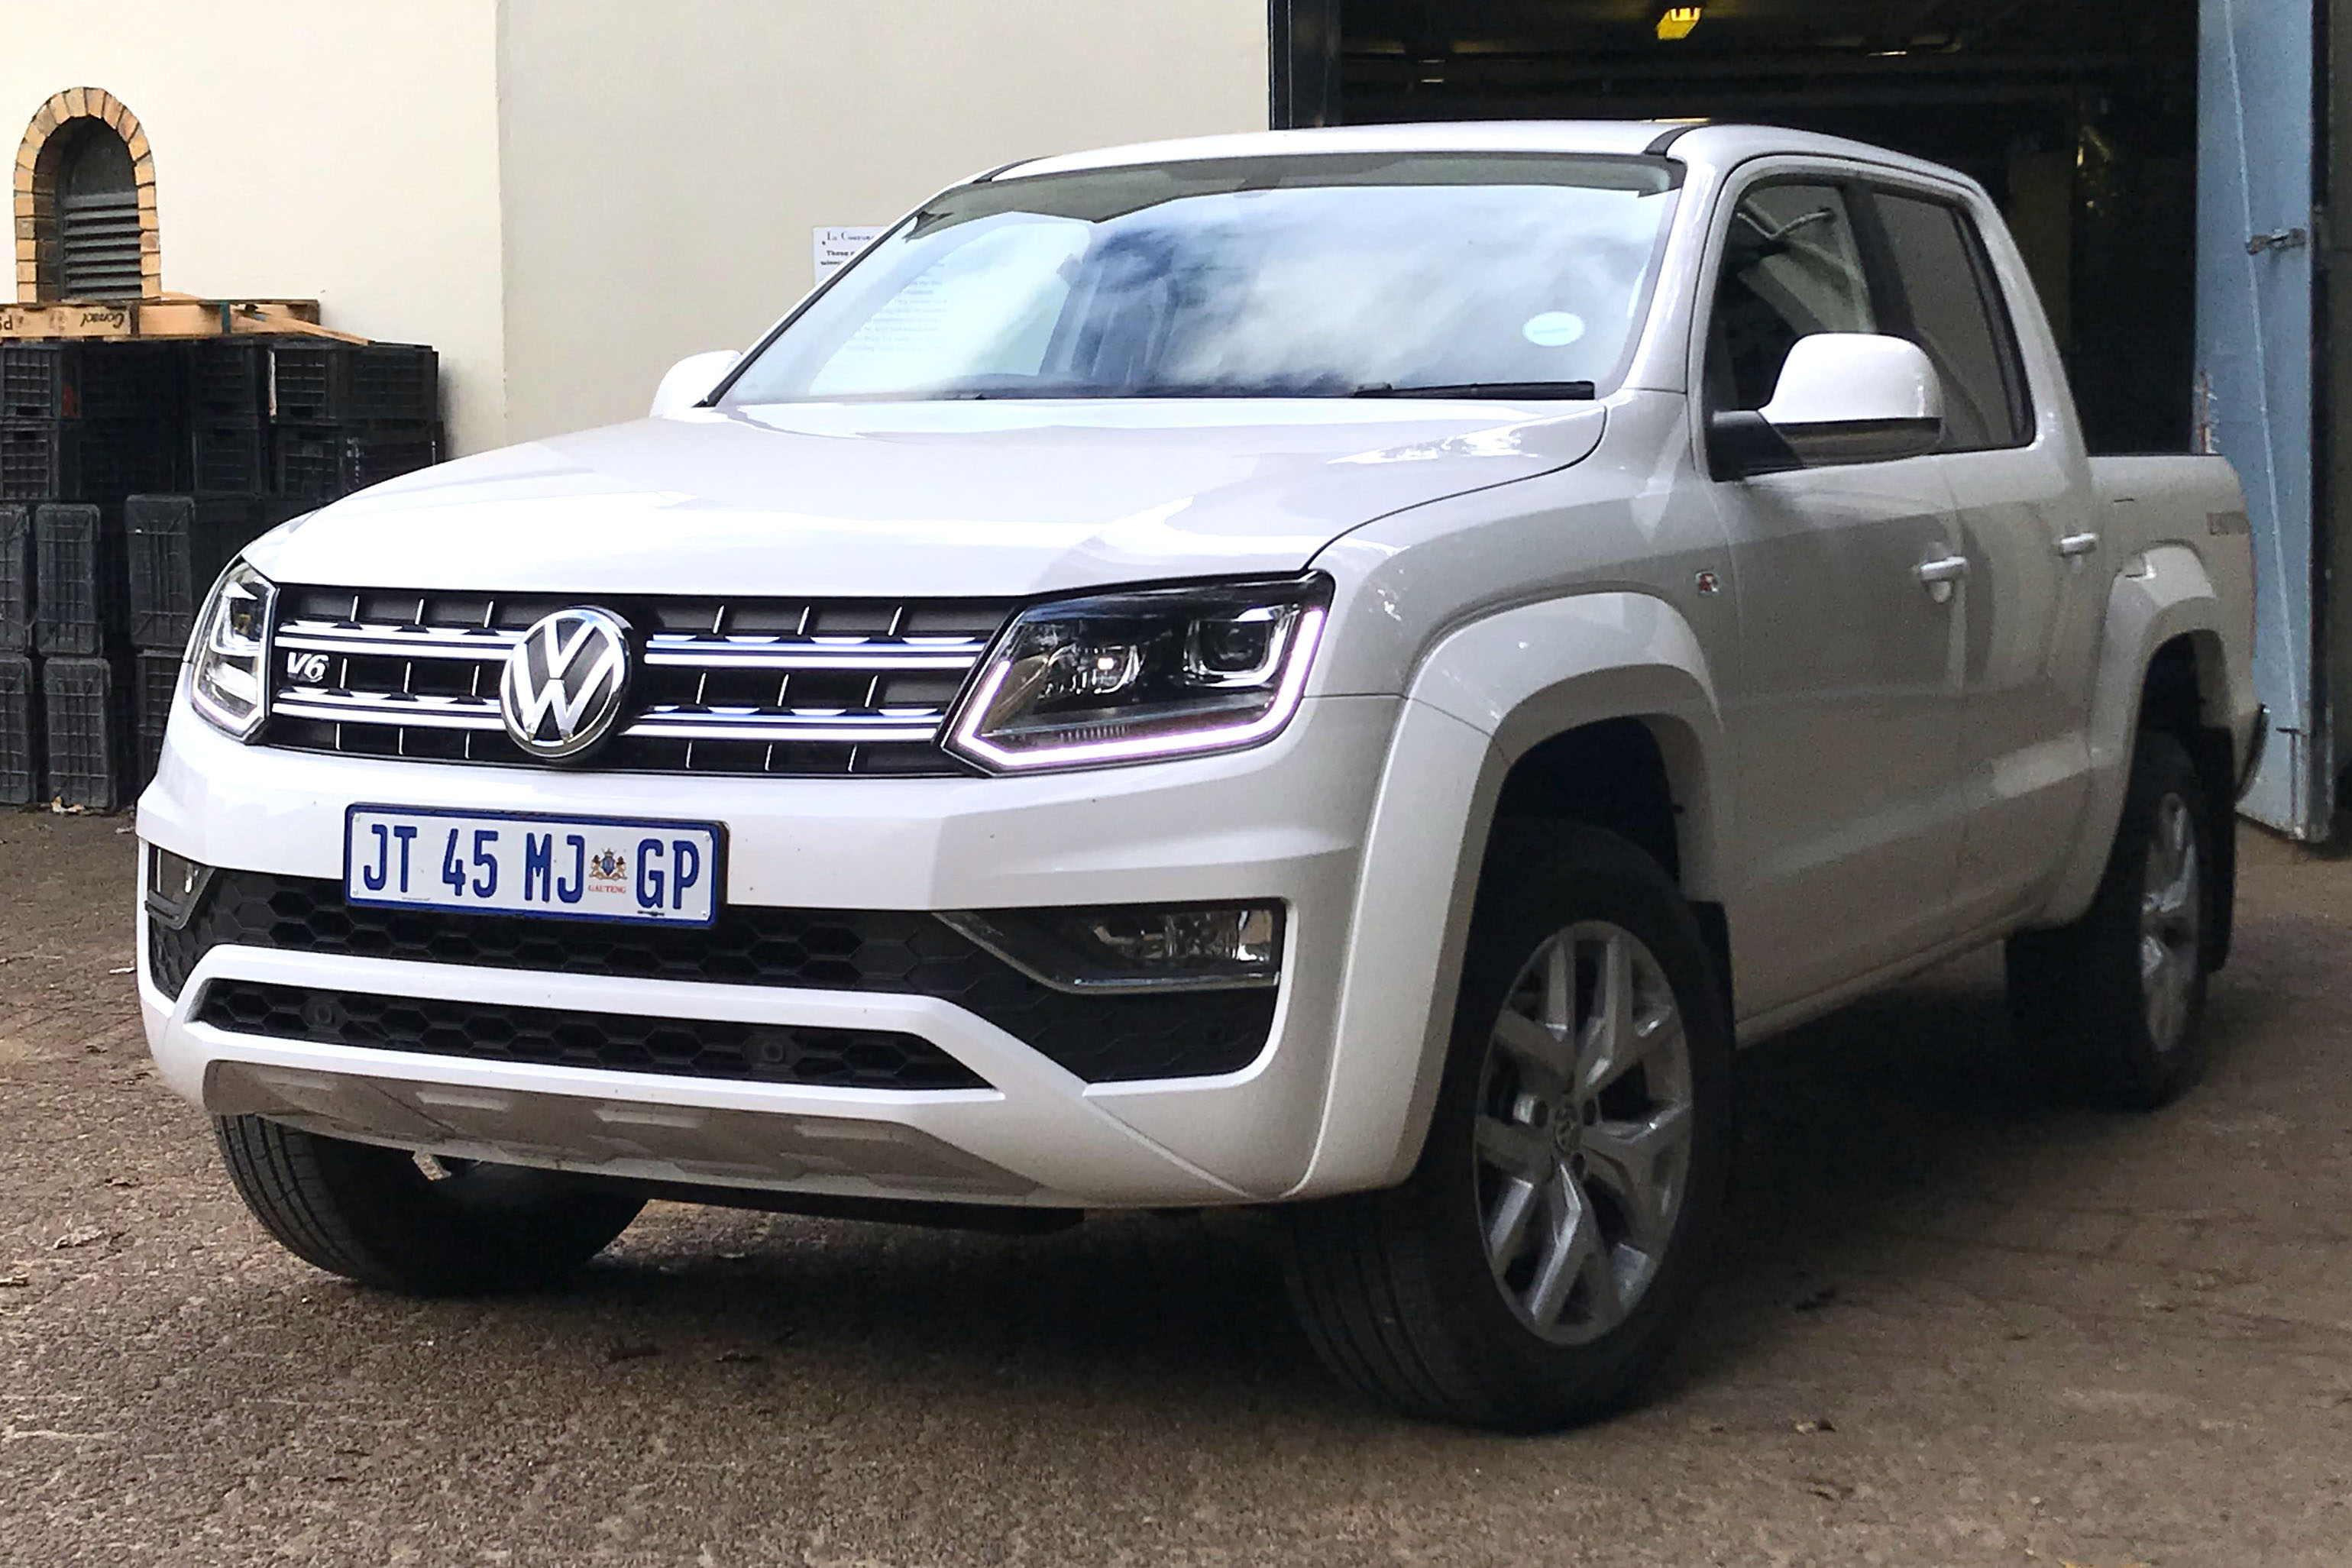 POWERED-UP AMAROK TOPS THE BAKKIE PILE. WE PUT IT TO THE TEST